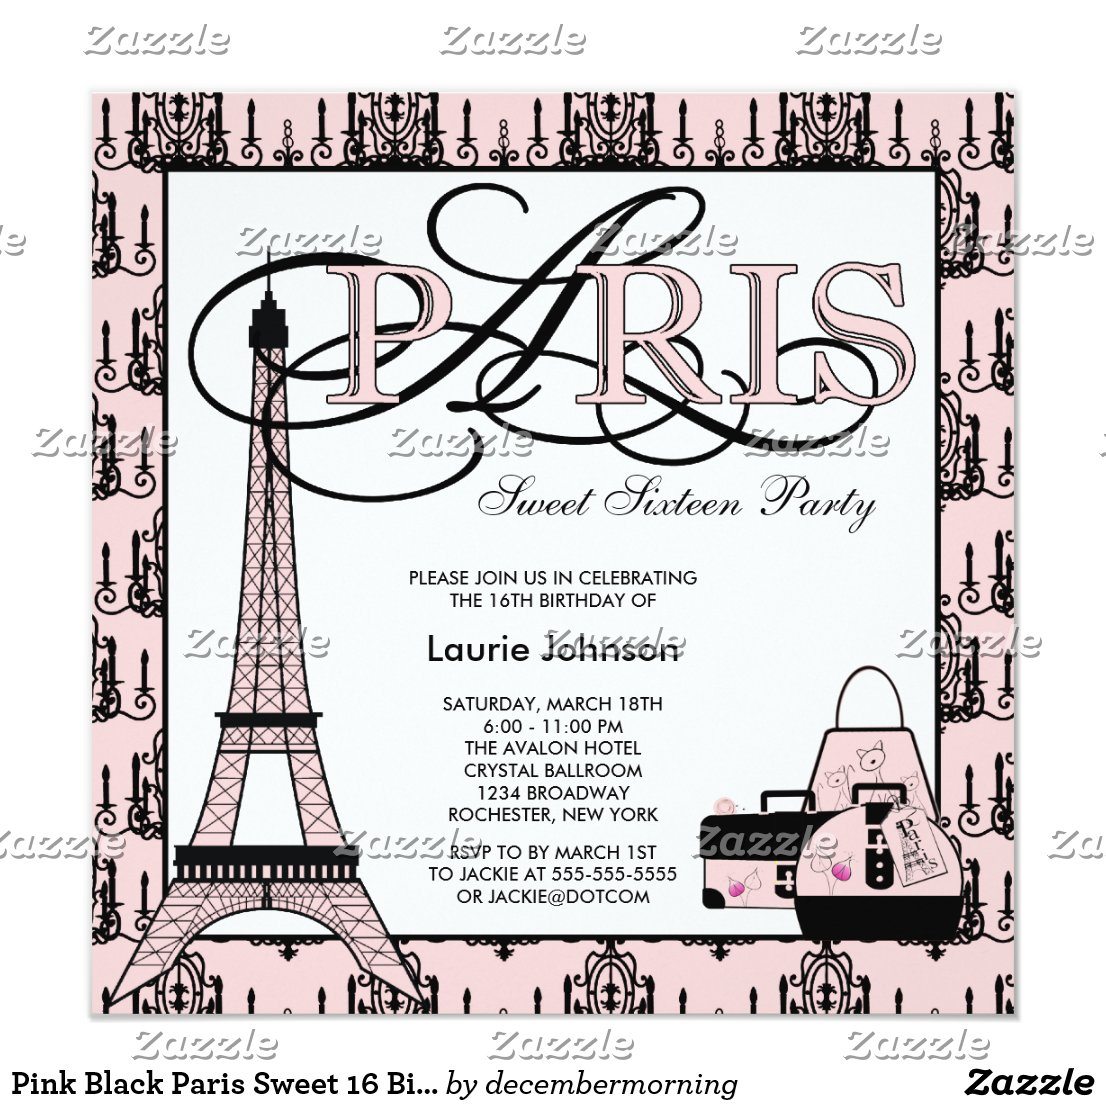 Pink Black Paris Sweet 16 Birthday Party Invitation